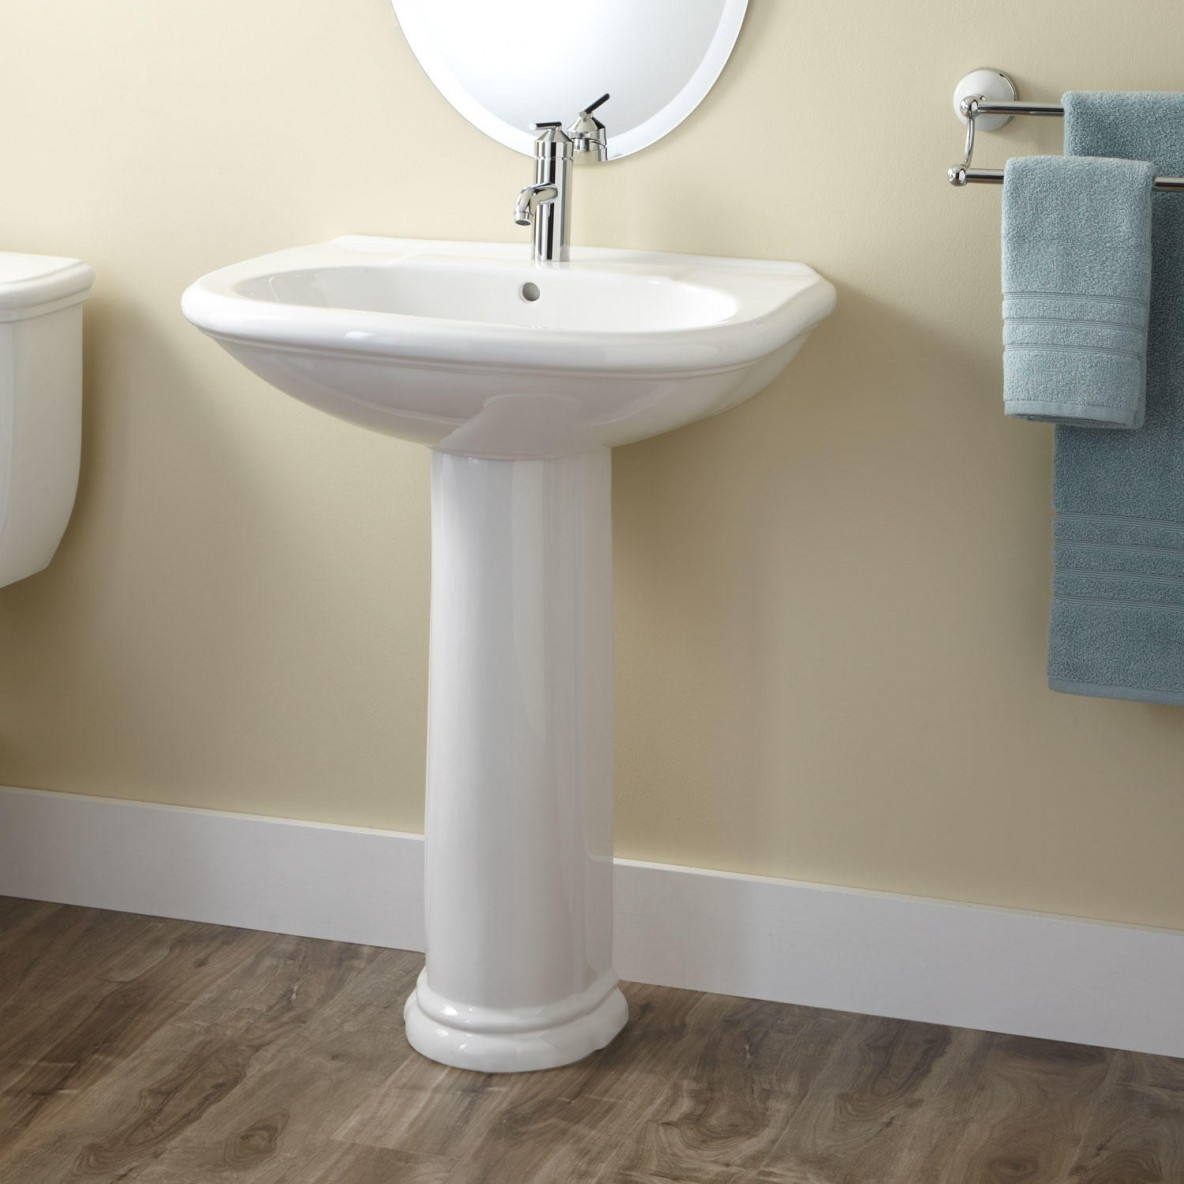 Pedestal sink Refinishing in San Diego